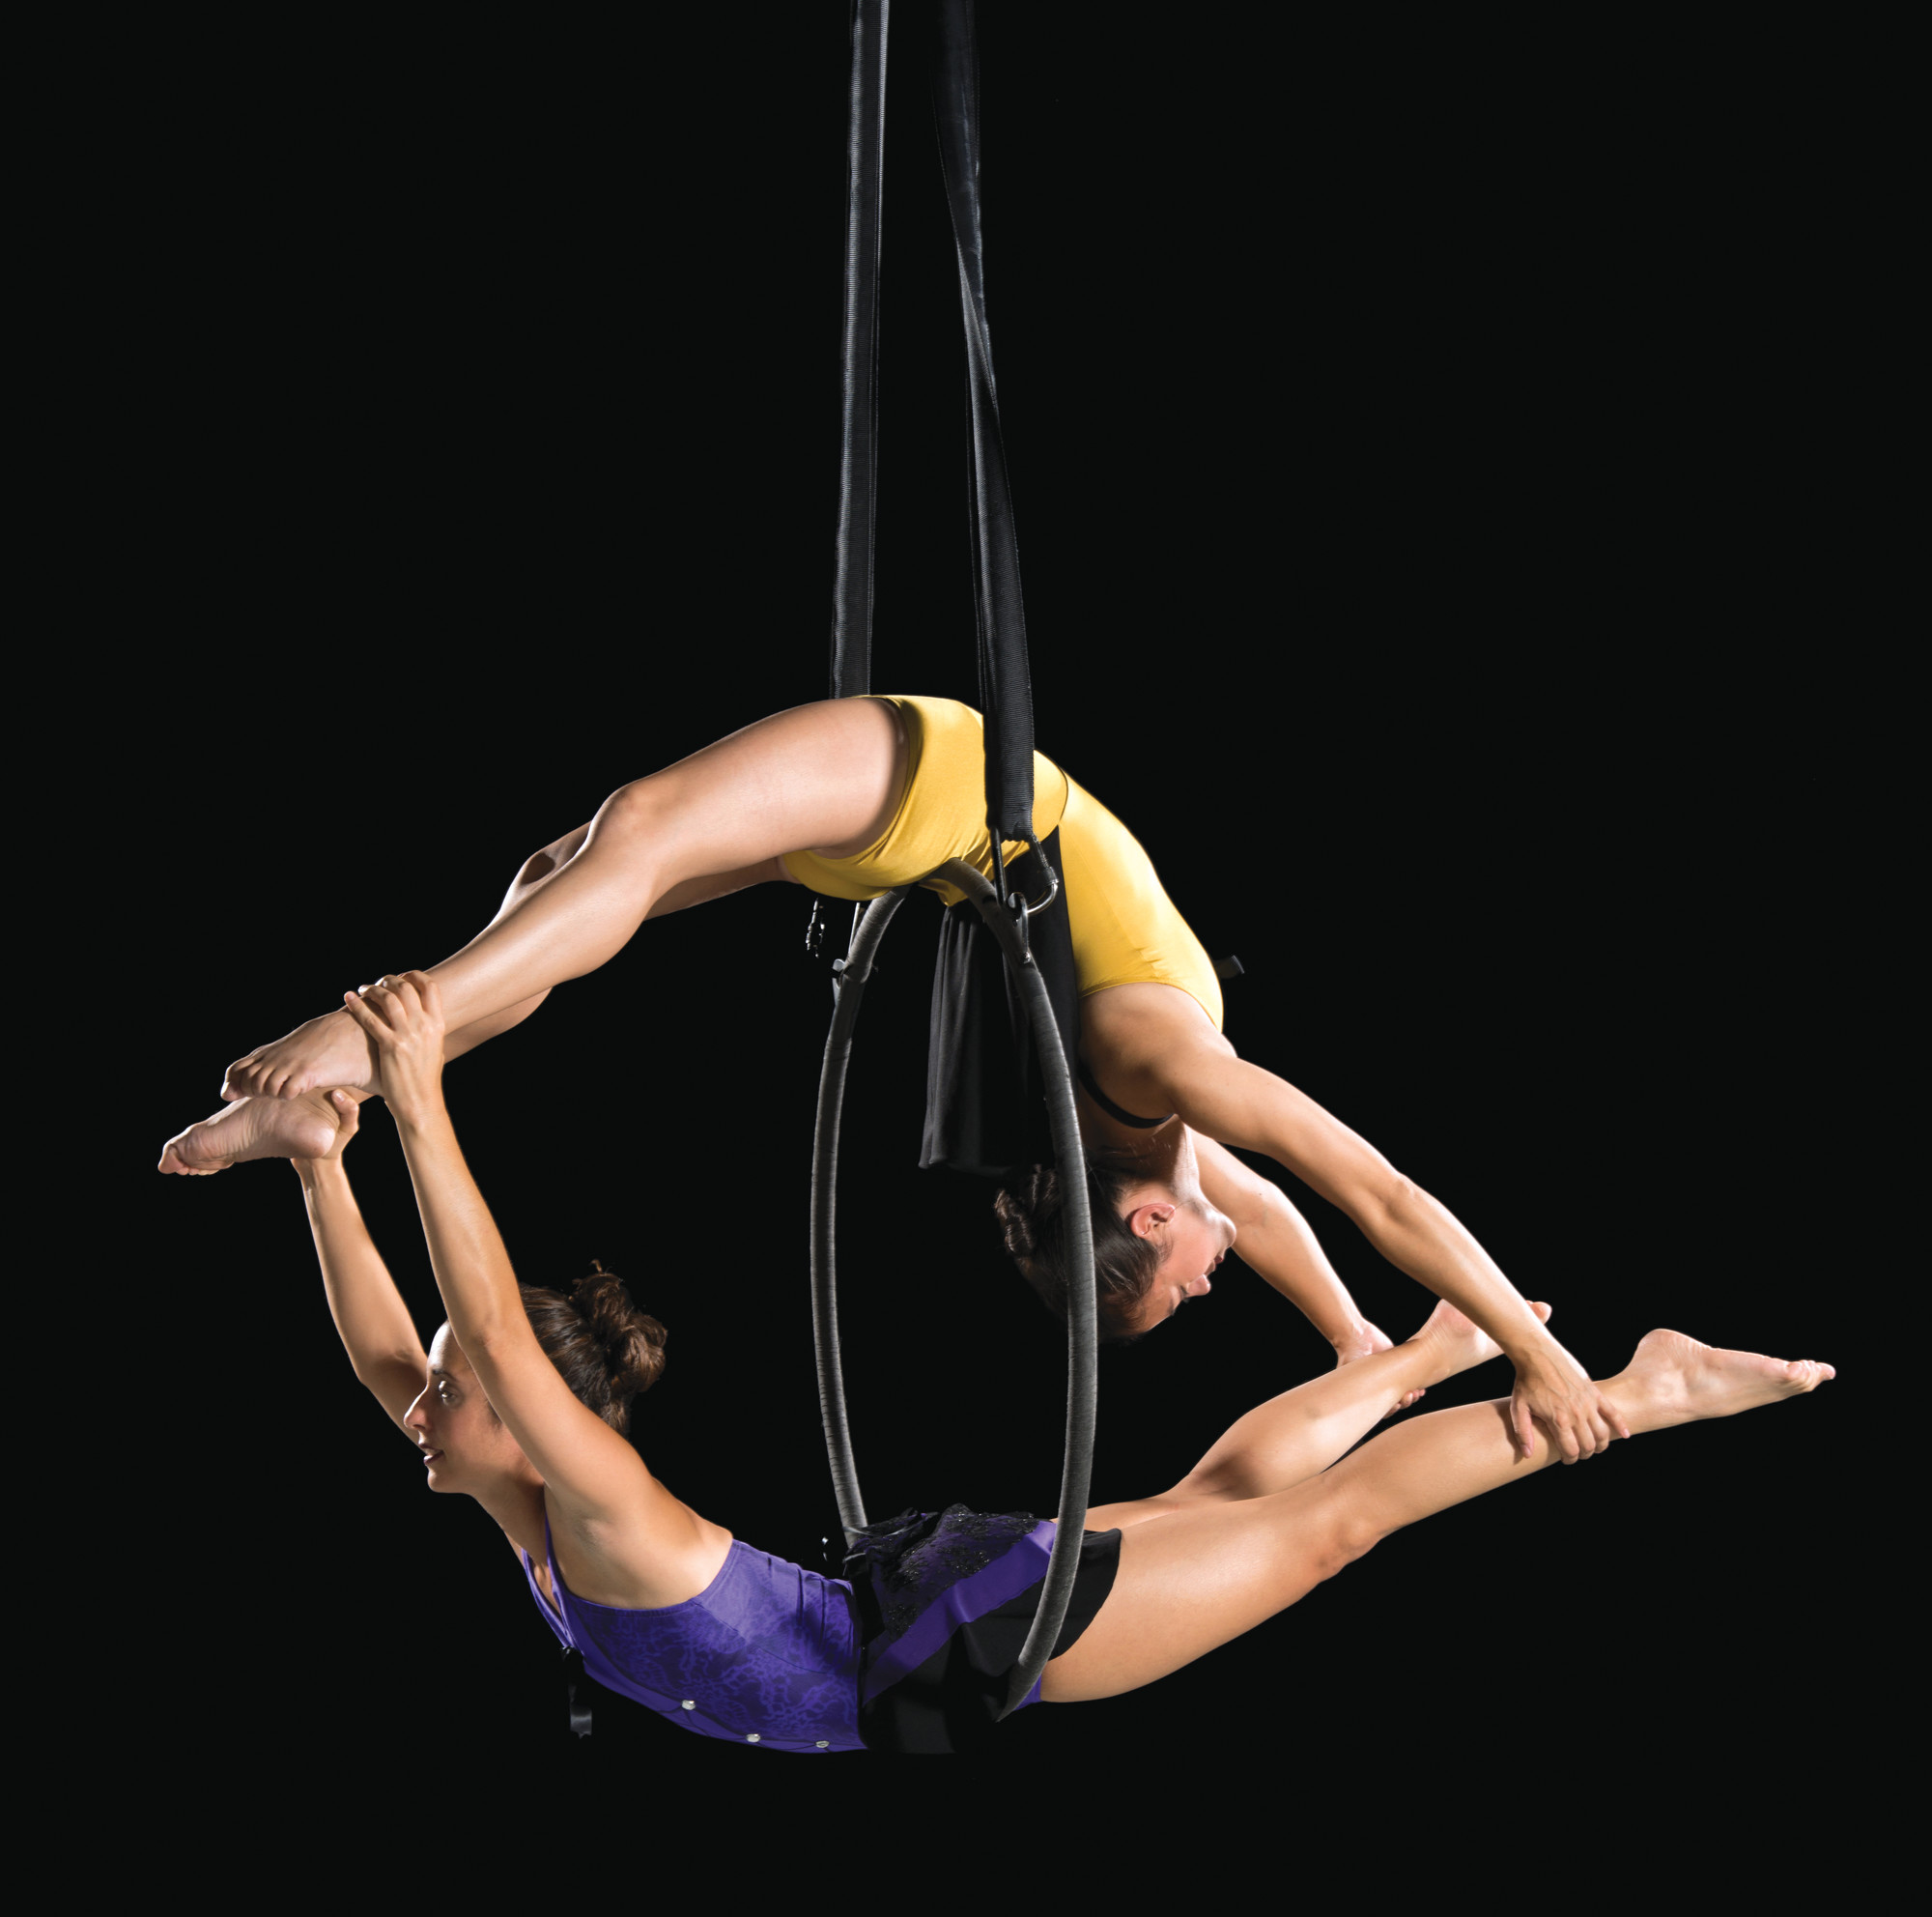 PHOTOS PROVIDEDPerformers from Caroline Calouche & Company, an aerial and contemporary dance troupe based in Charlotte, will perform during the weekend's Sumter Art Showcase.